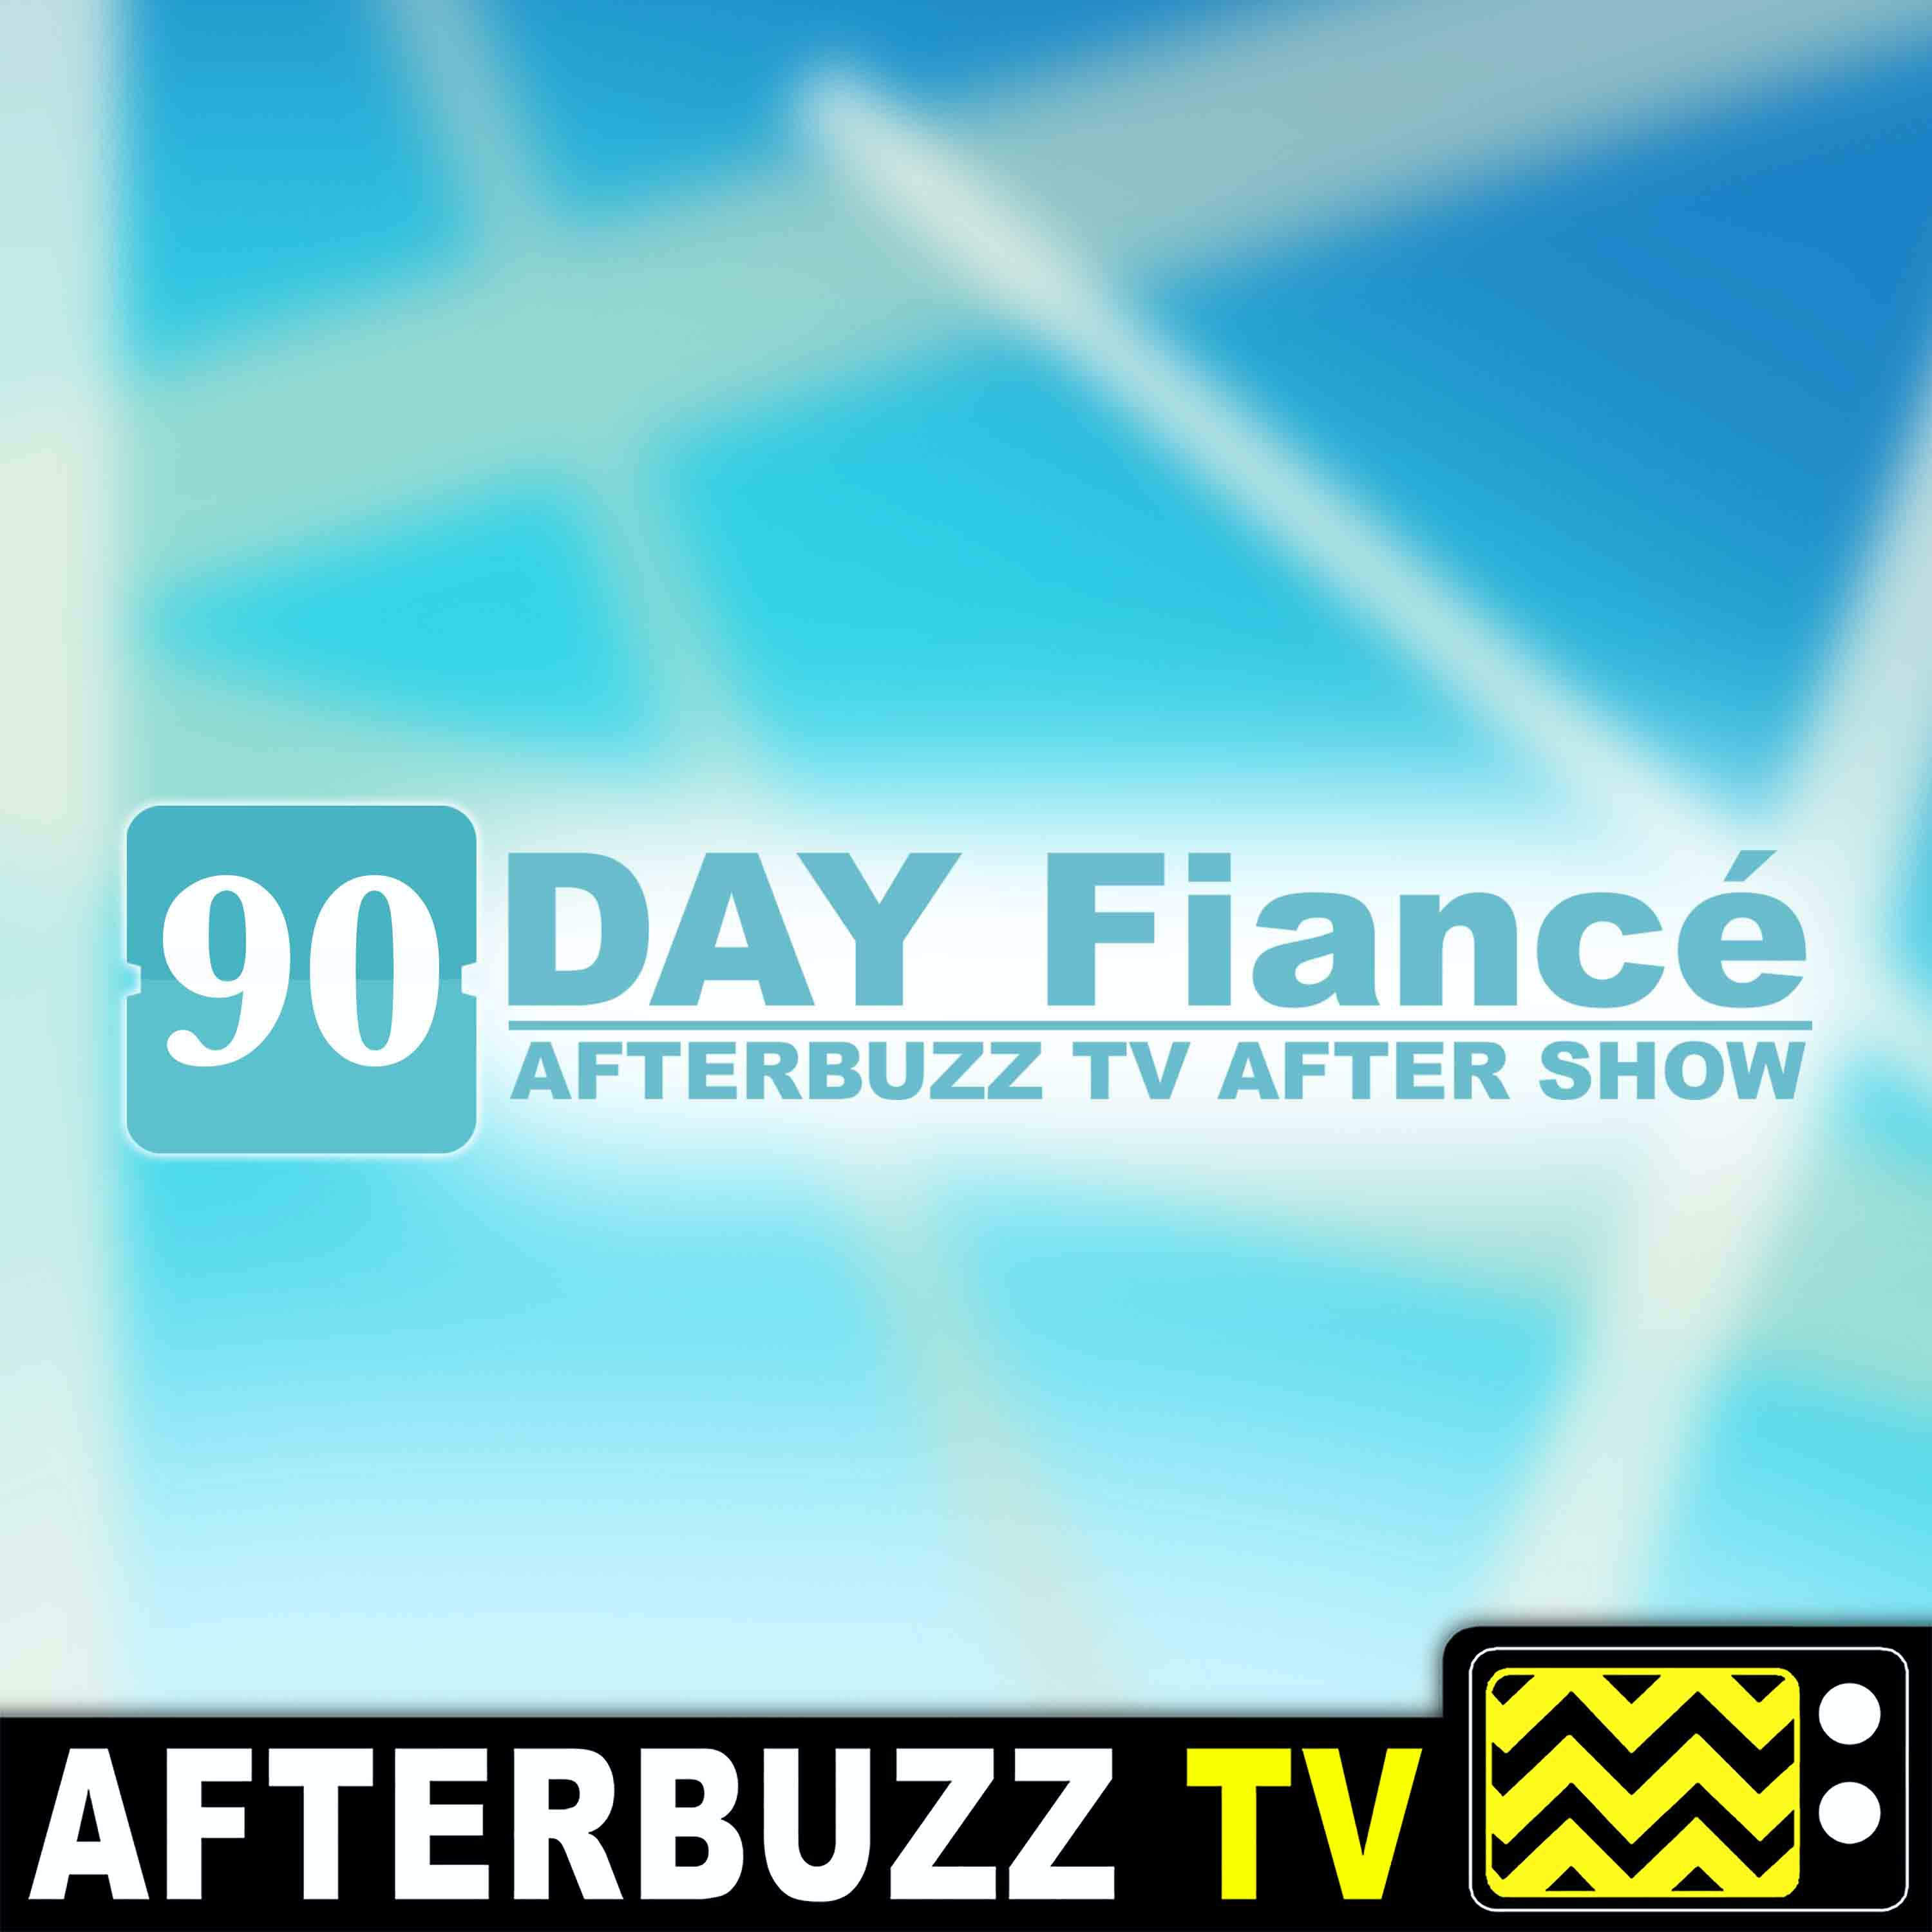 Should've Known Better - S4 E9 '90 Day Fiancé: Before the 90 Days' After Show